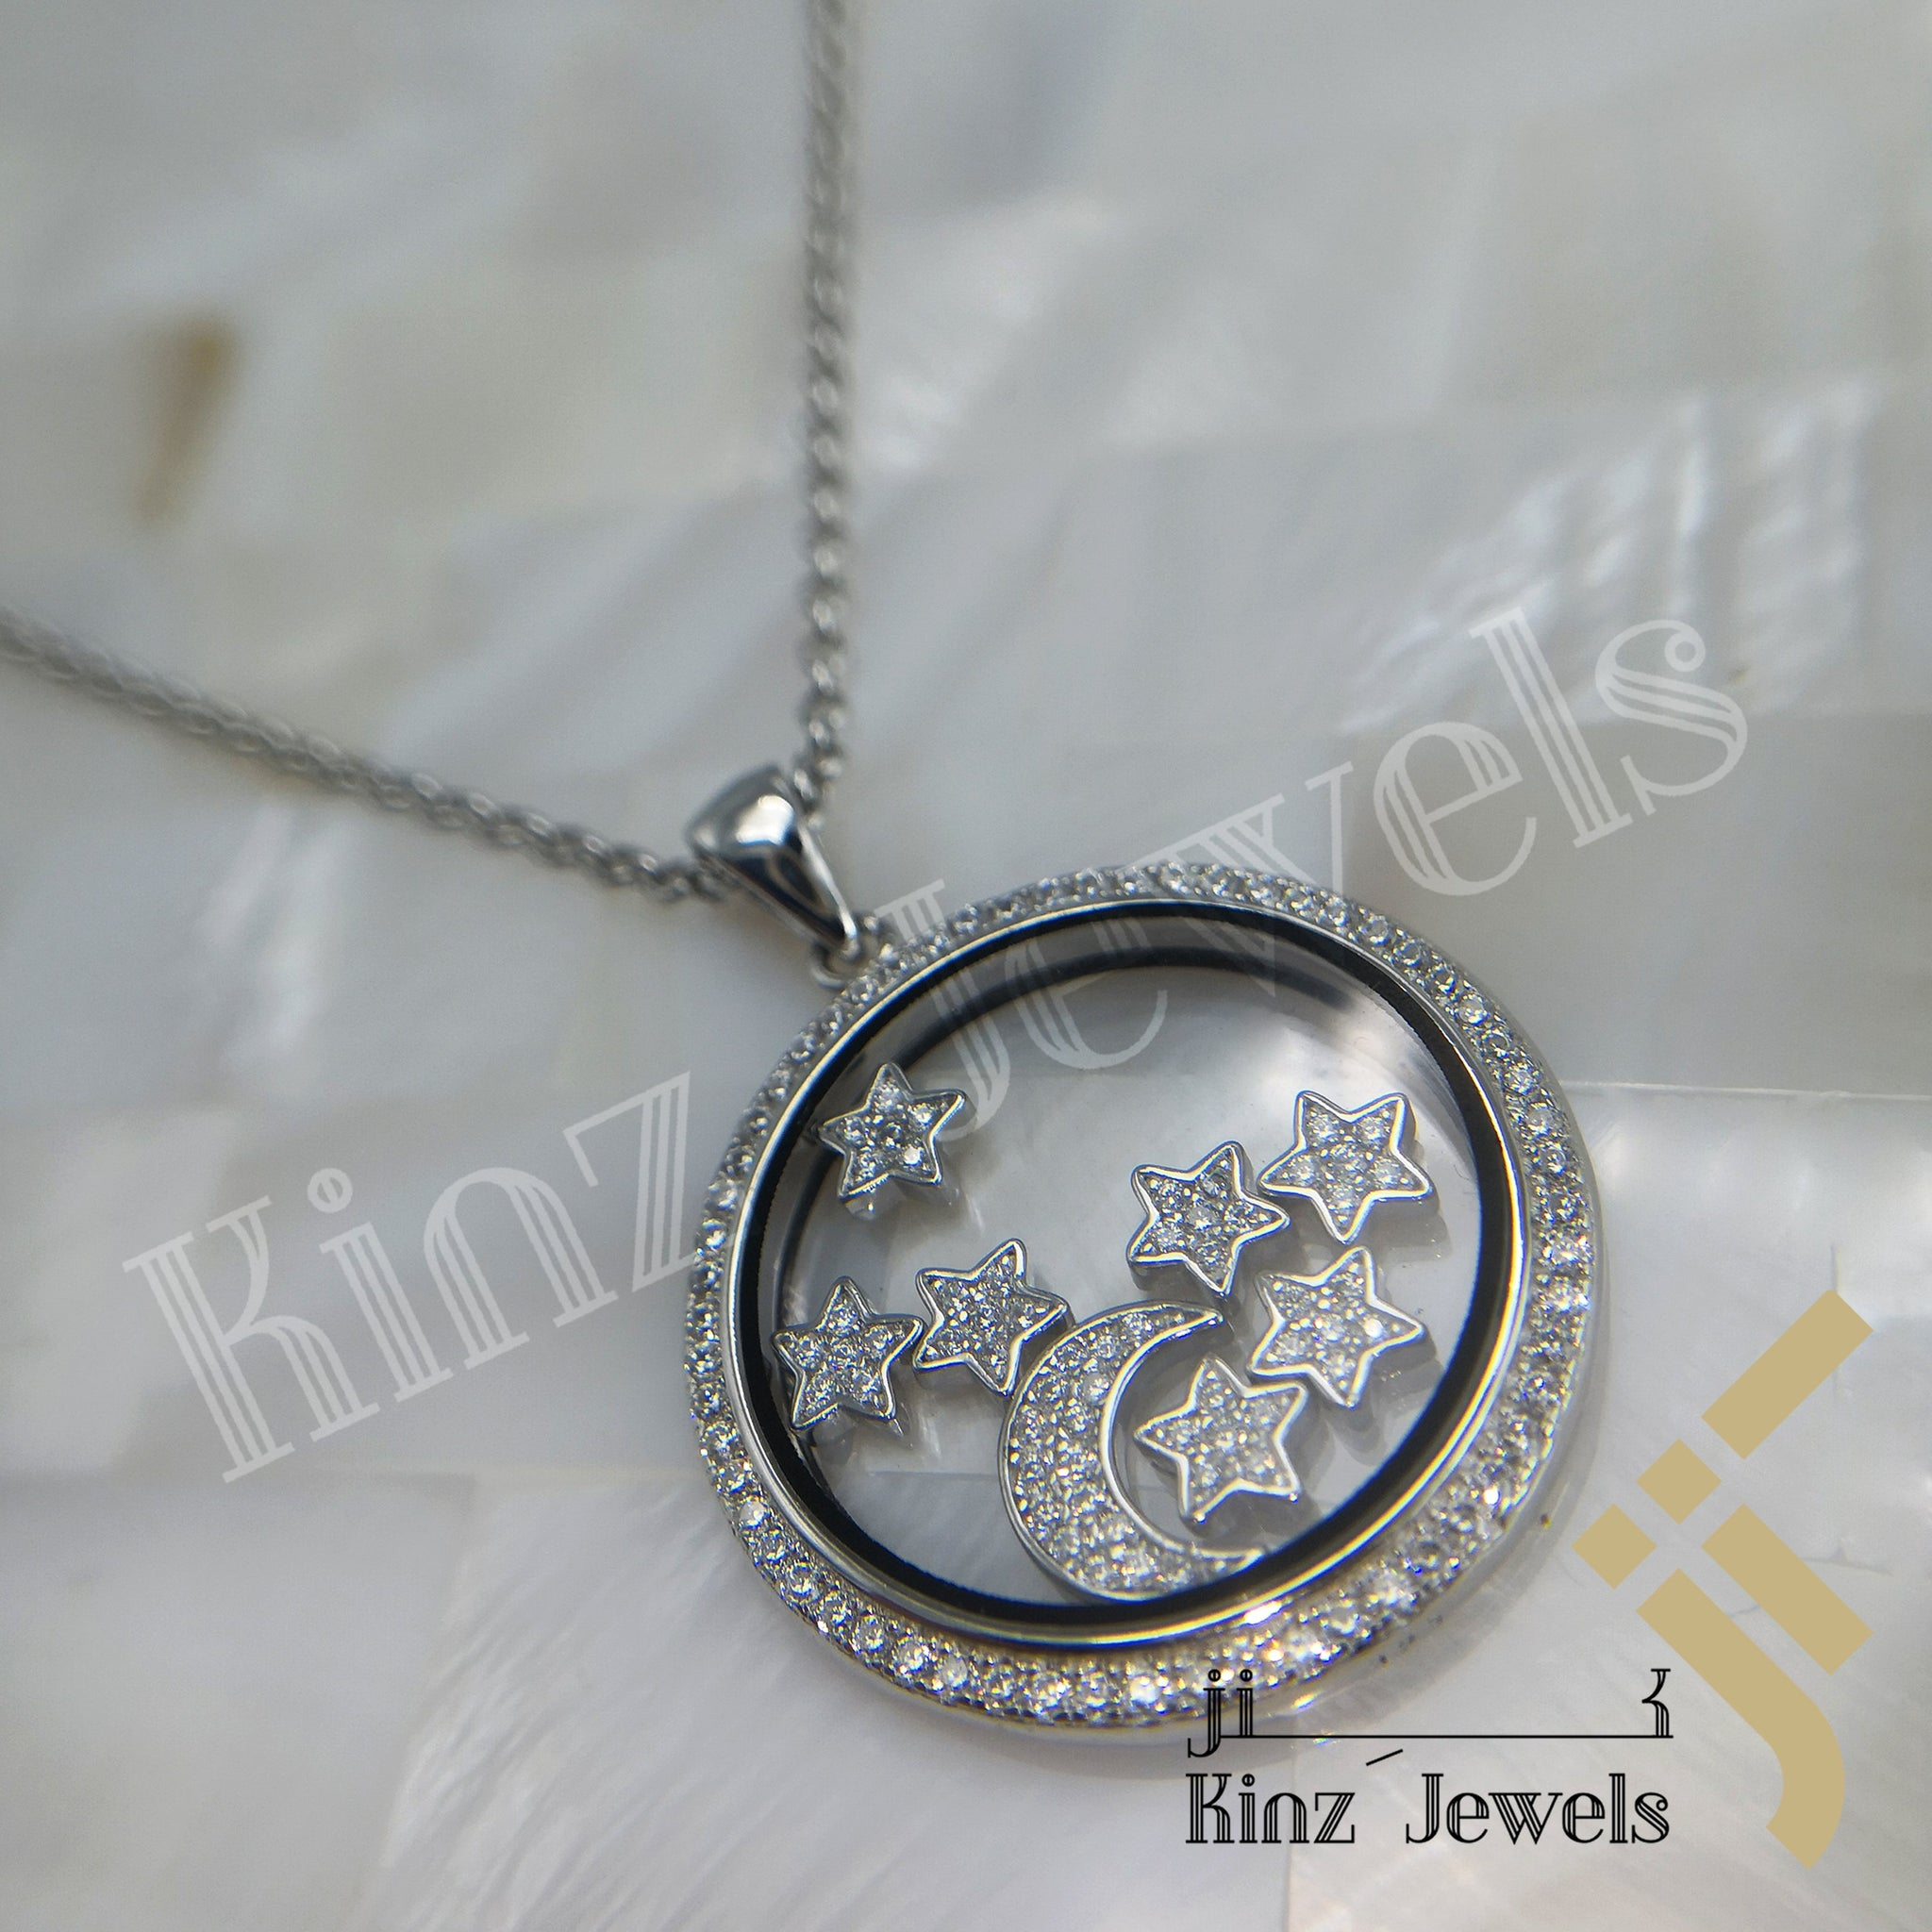 kinzjewels - Personalized Glass Sterling Silver Floating Stars & Moon Crescent